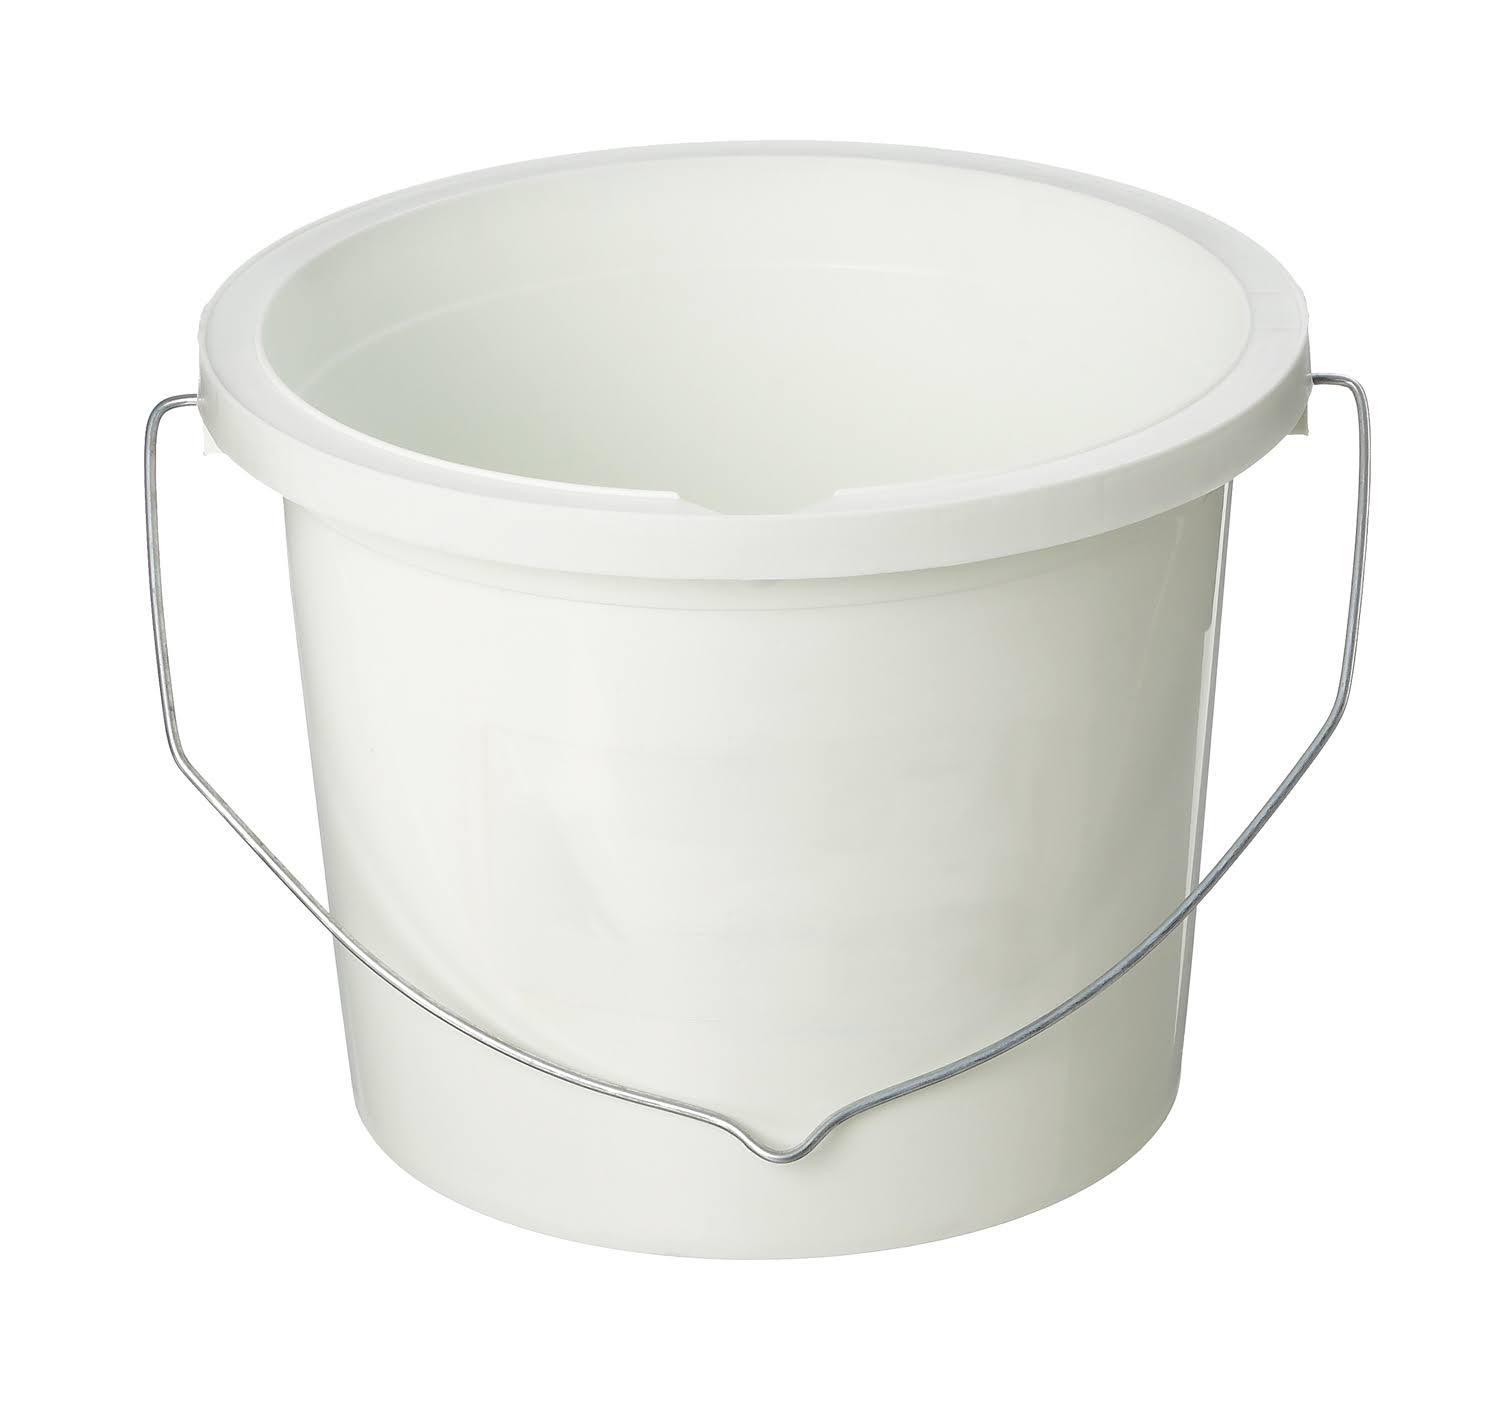 Harris Plastic Paint Kettle - White, 2.4l